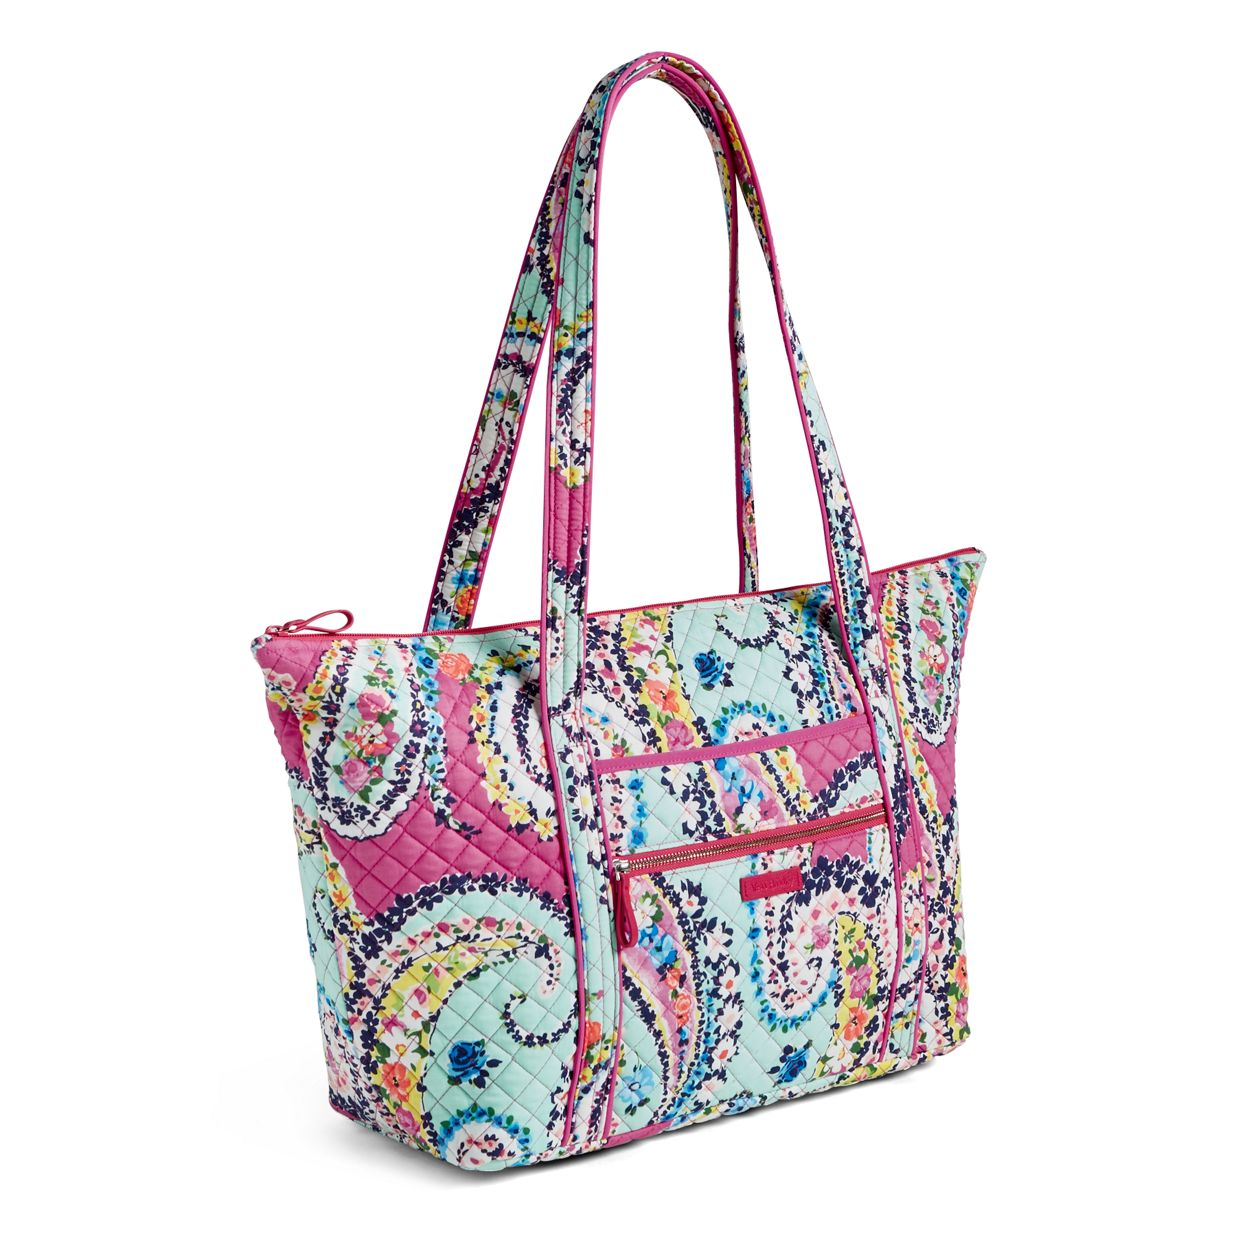 8c9b4b2f5a ... Image of Iconic Miller Travel Bag in Pretty Posies ...